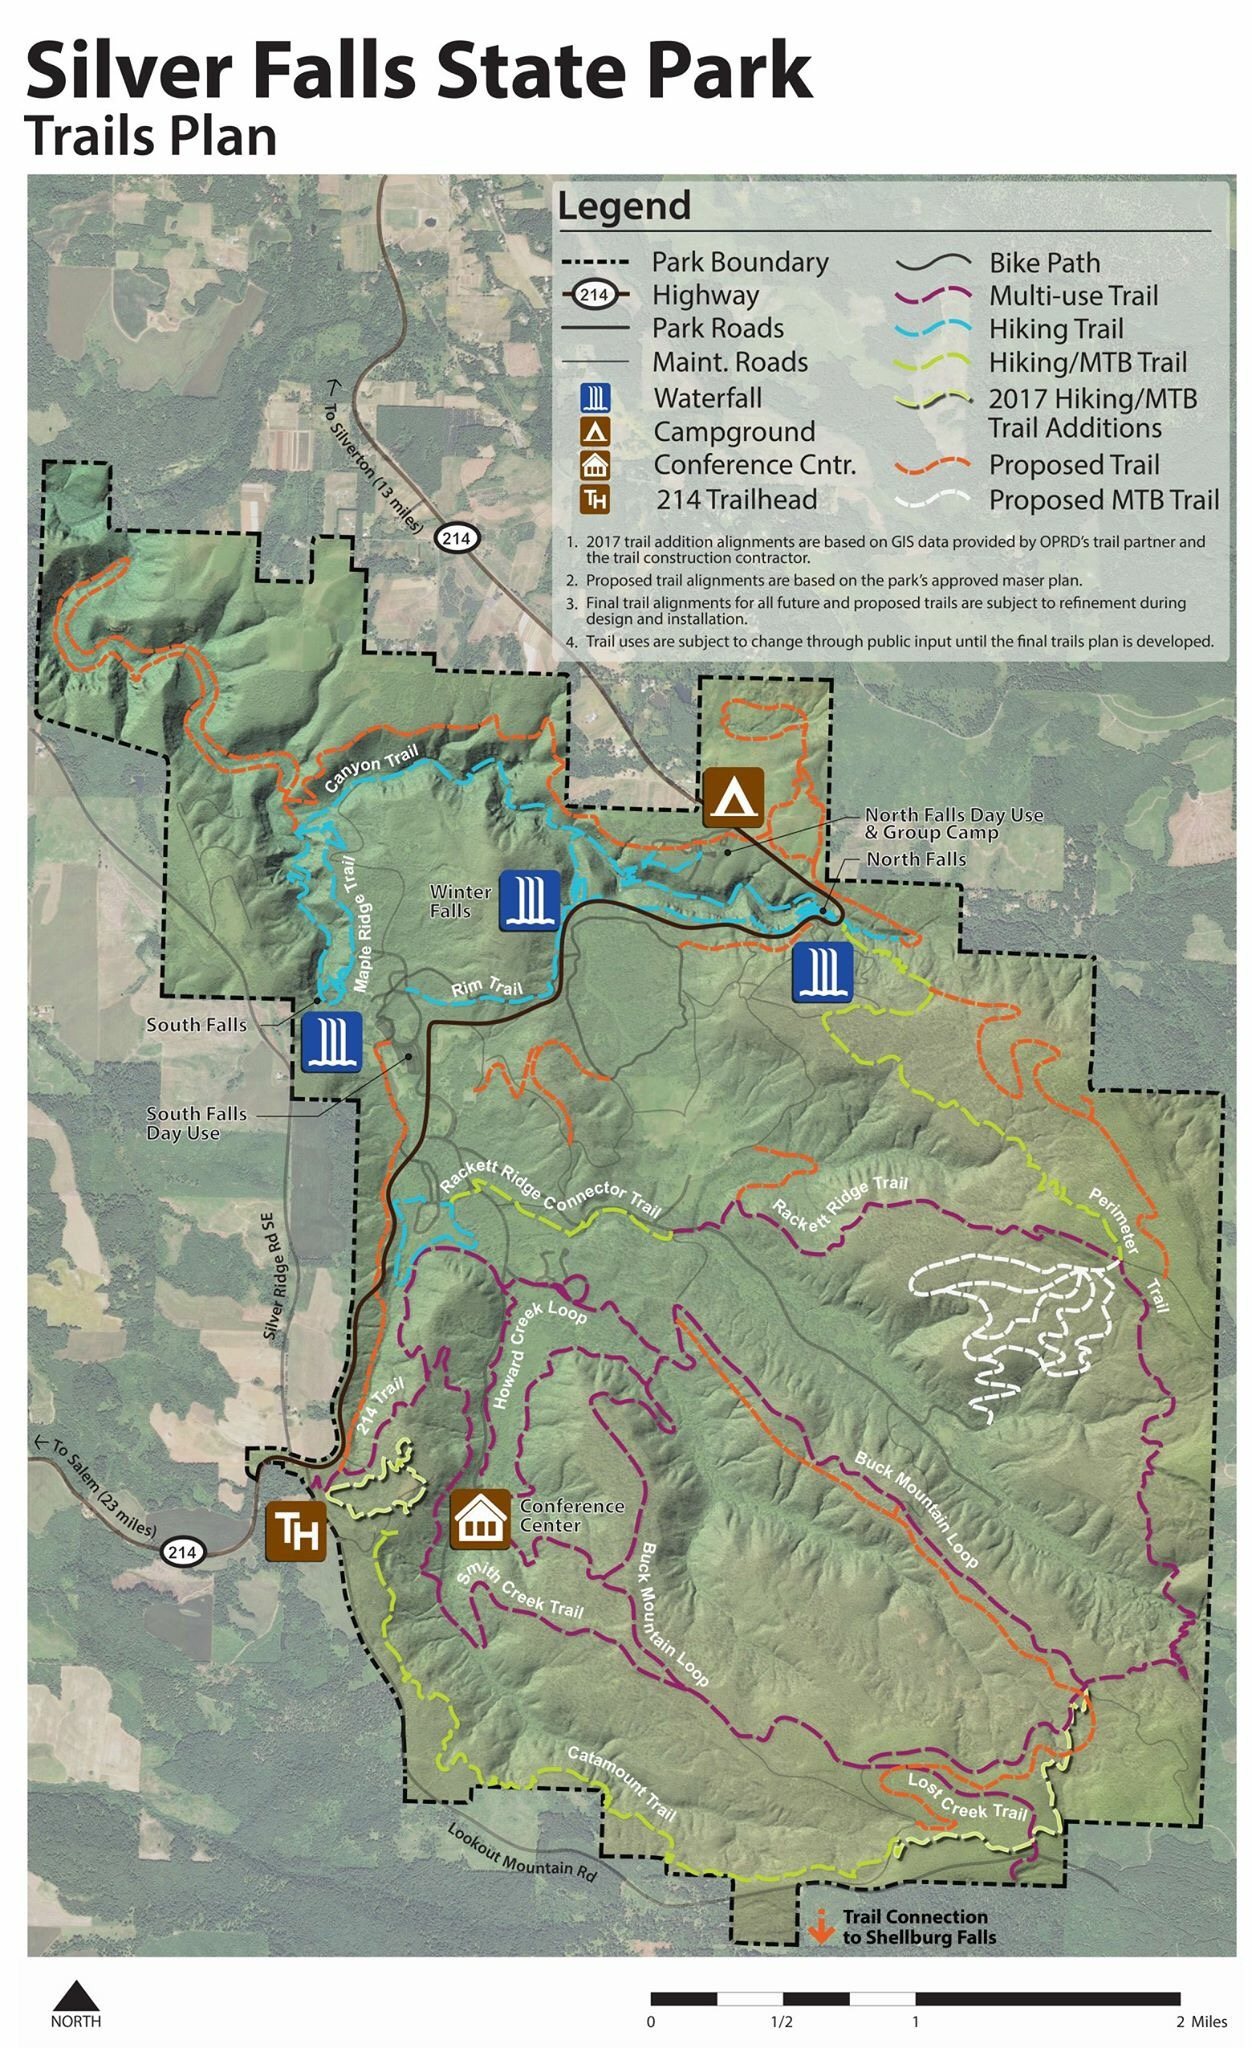 Silver Falls State Park Trails Public Meeting Tribe503 Com